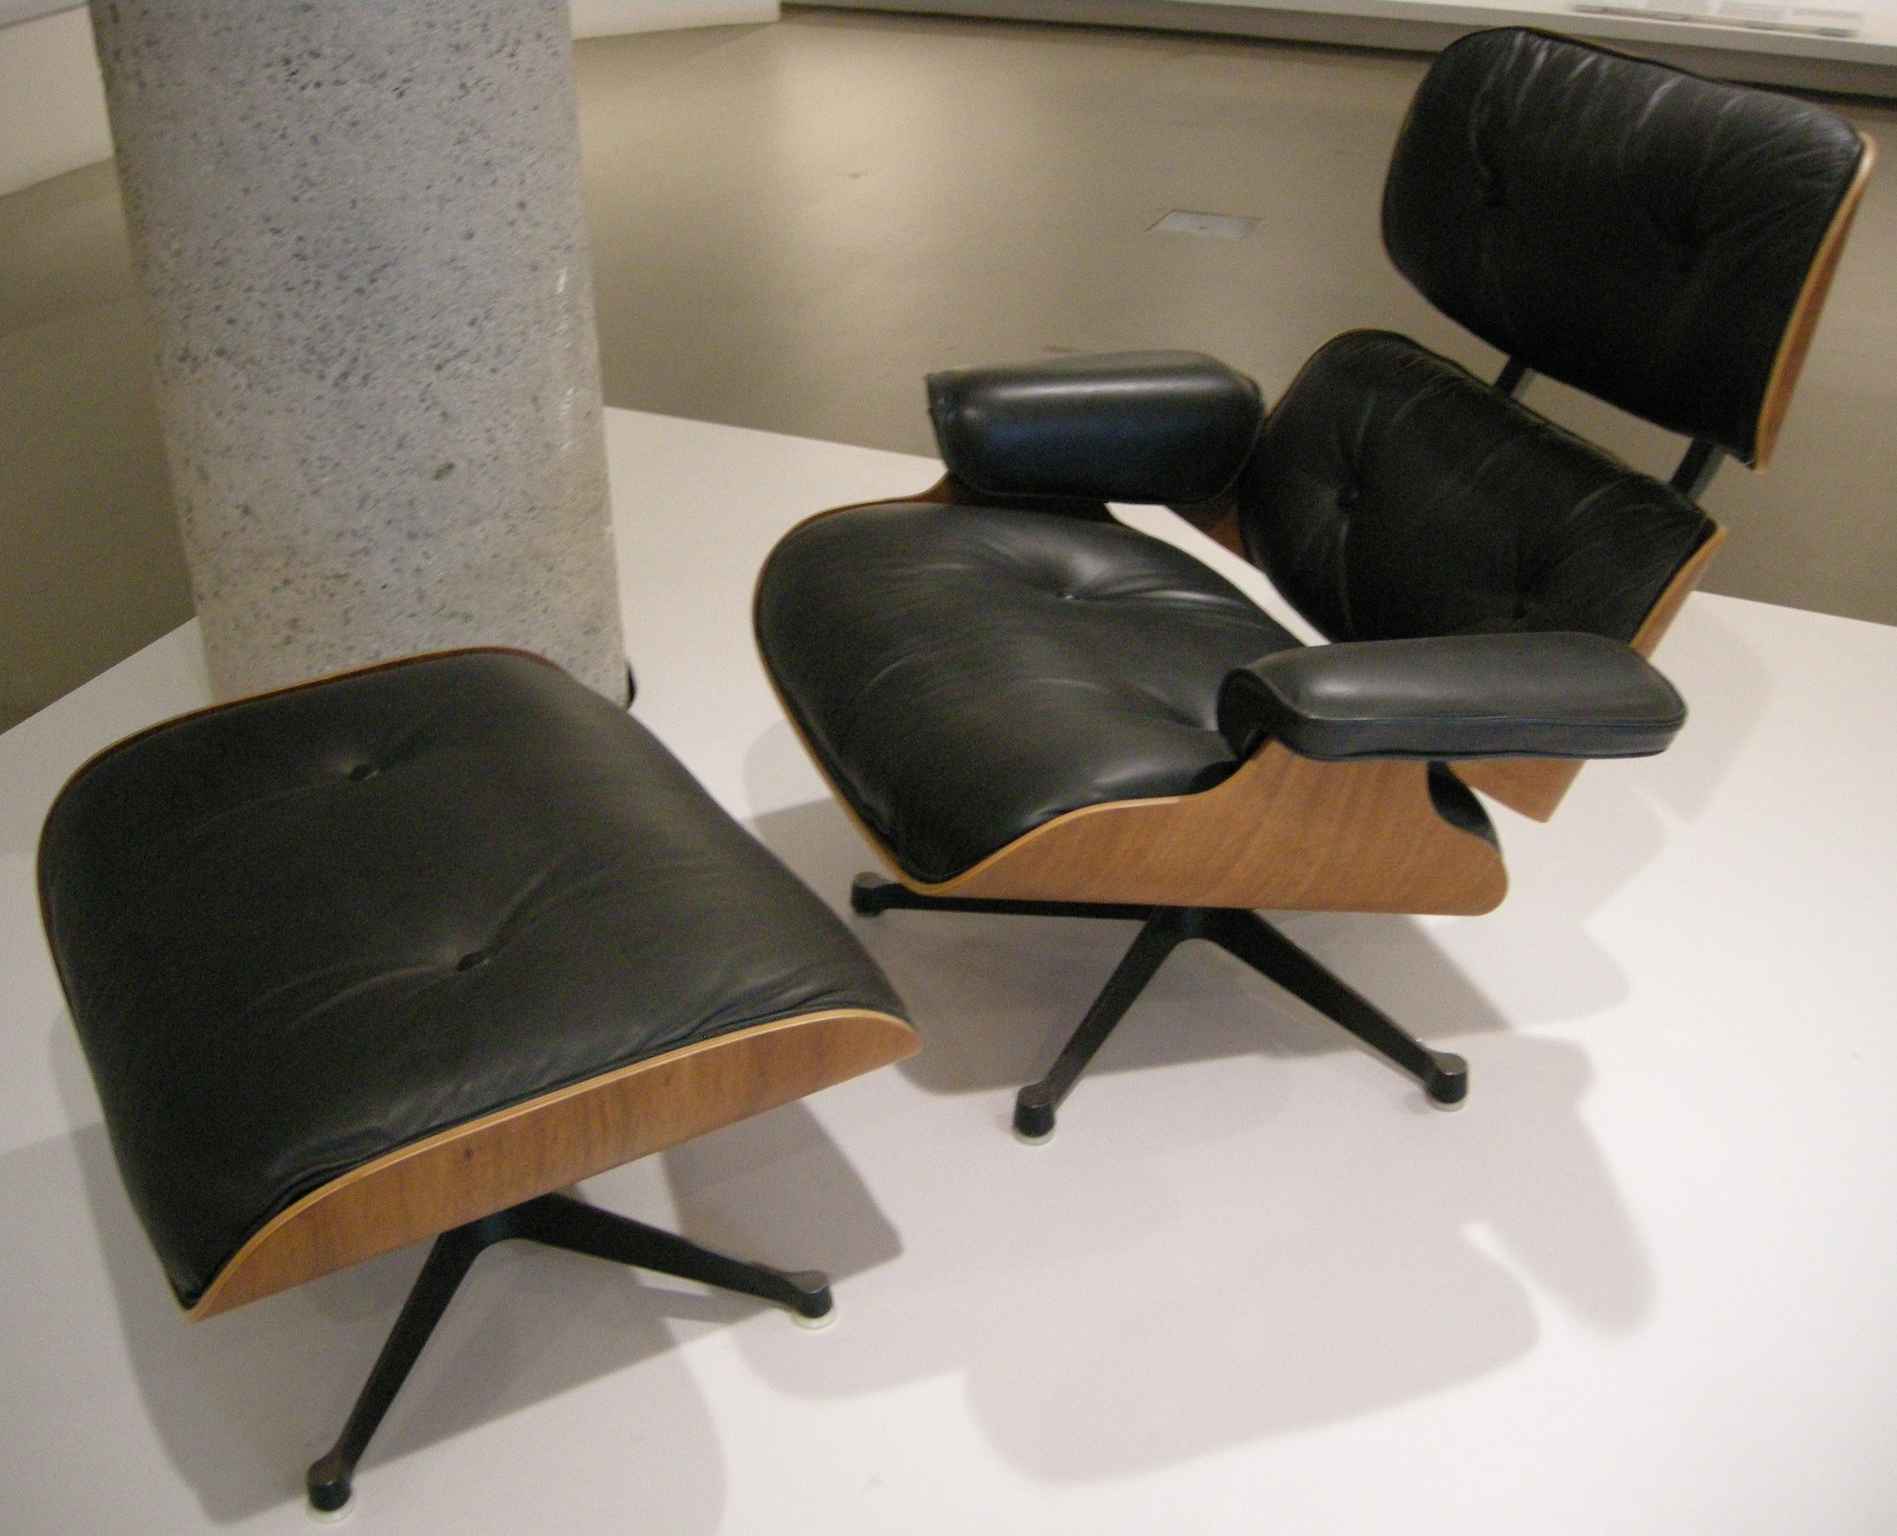 James Eames Lounge Chair File:ngv Design, Charles Eames And Herman Miller, Lounge ...